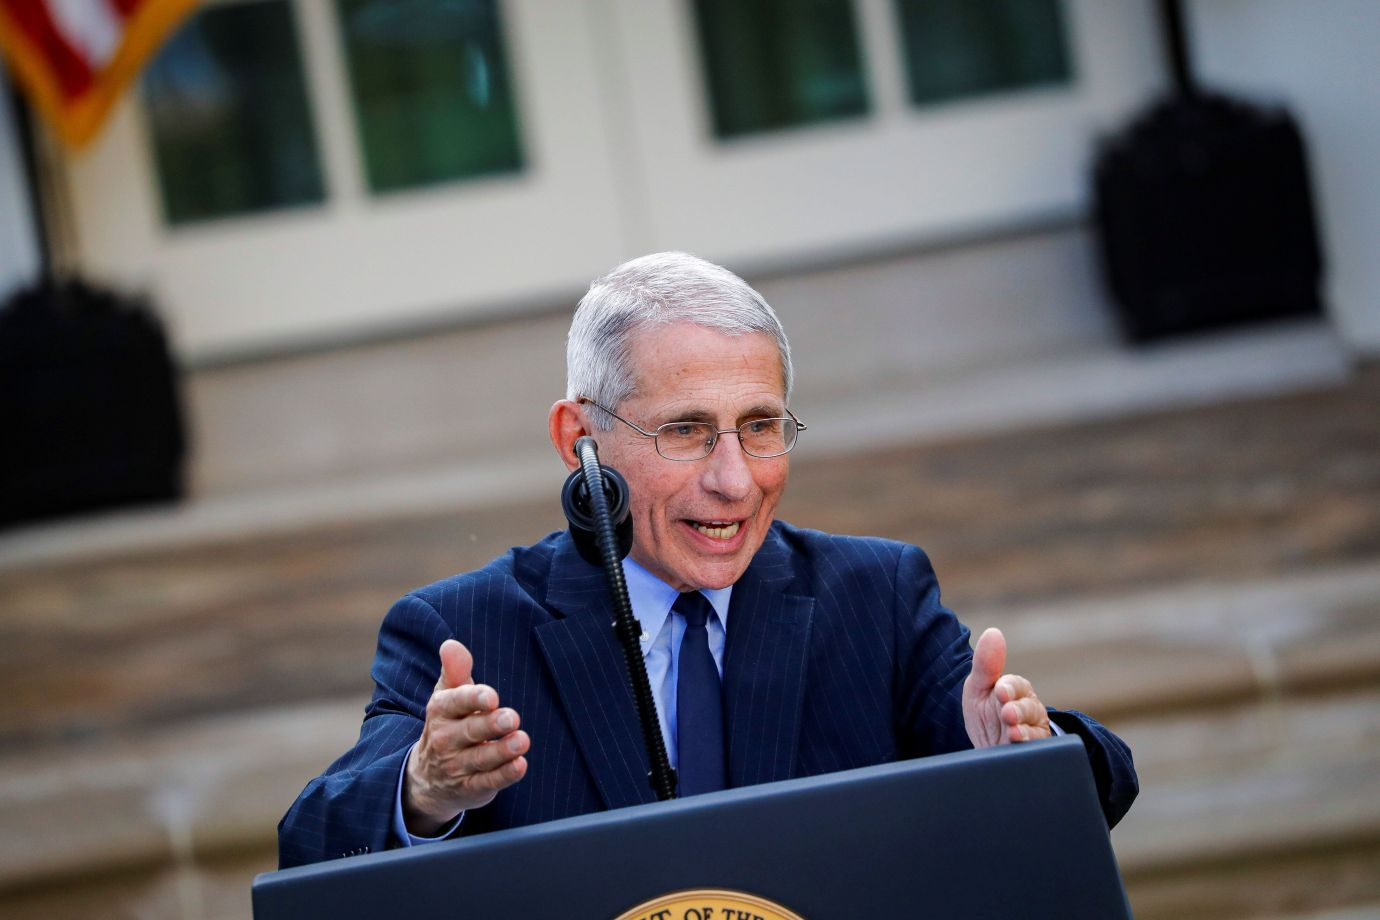 NIH National Institute of Allergy and Infectious Diseases Director Anthony Fauci speaks during a news conference in the Rose Garden of the White House Sunday.